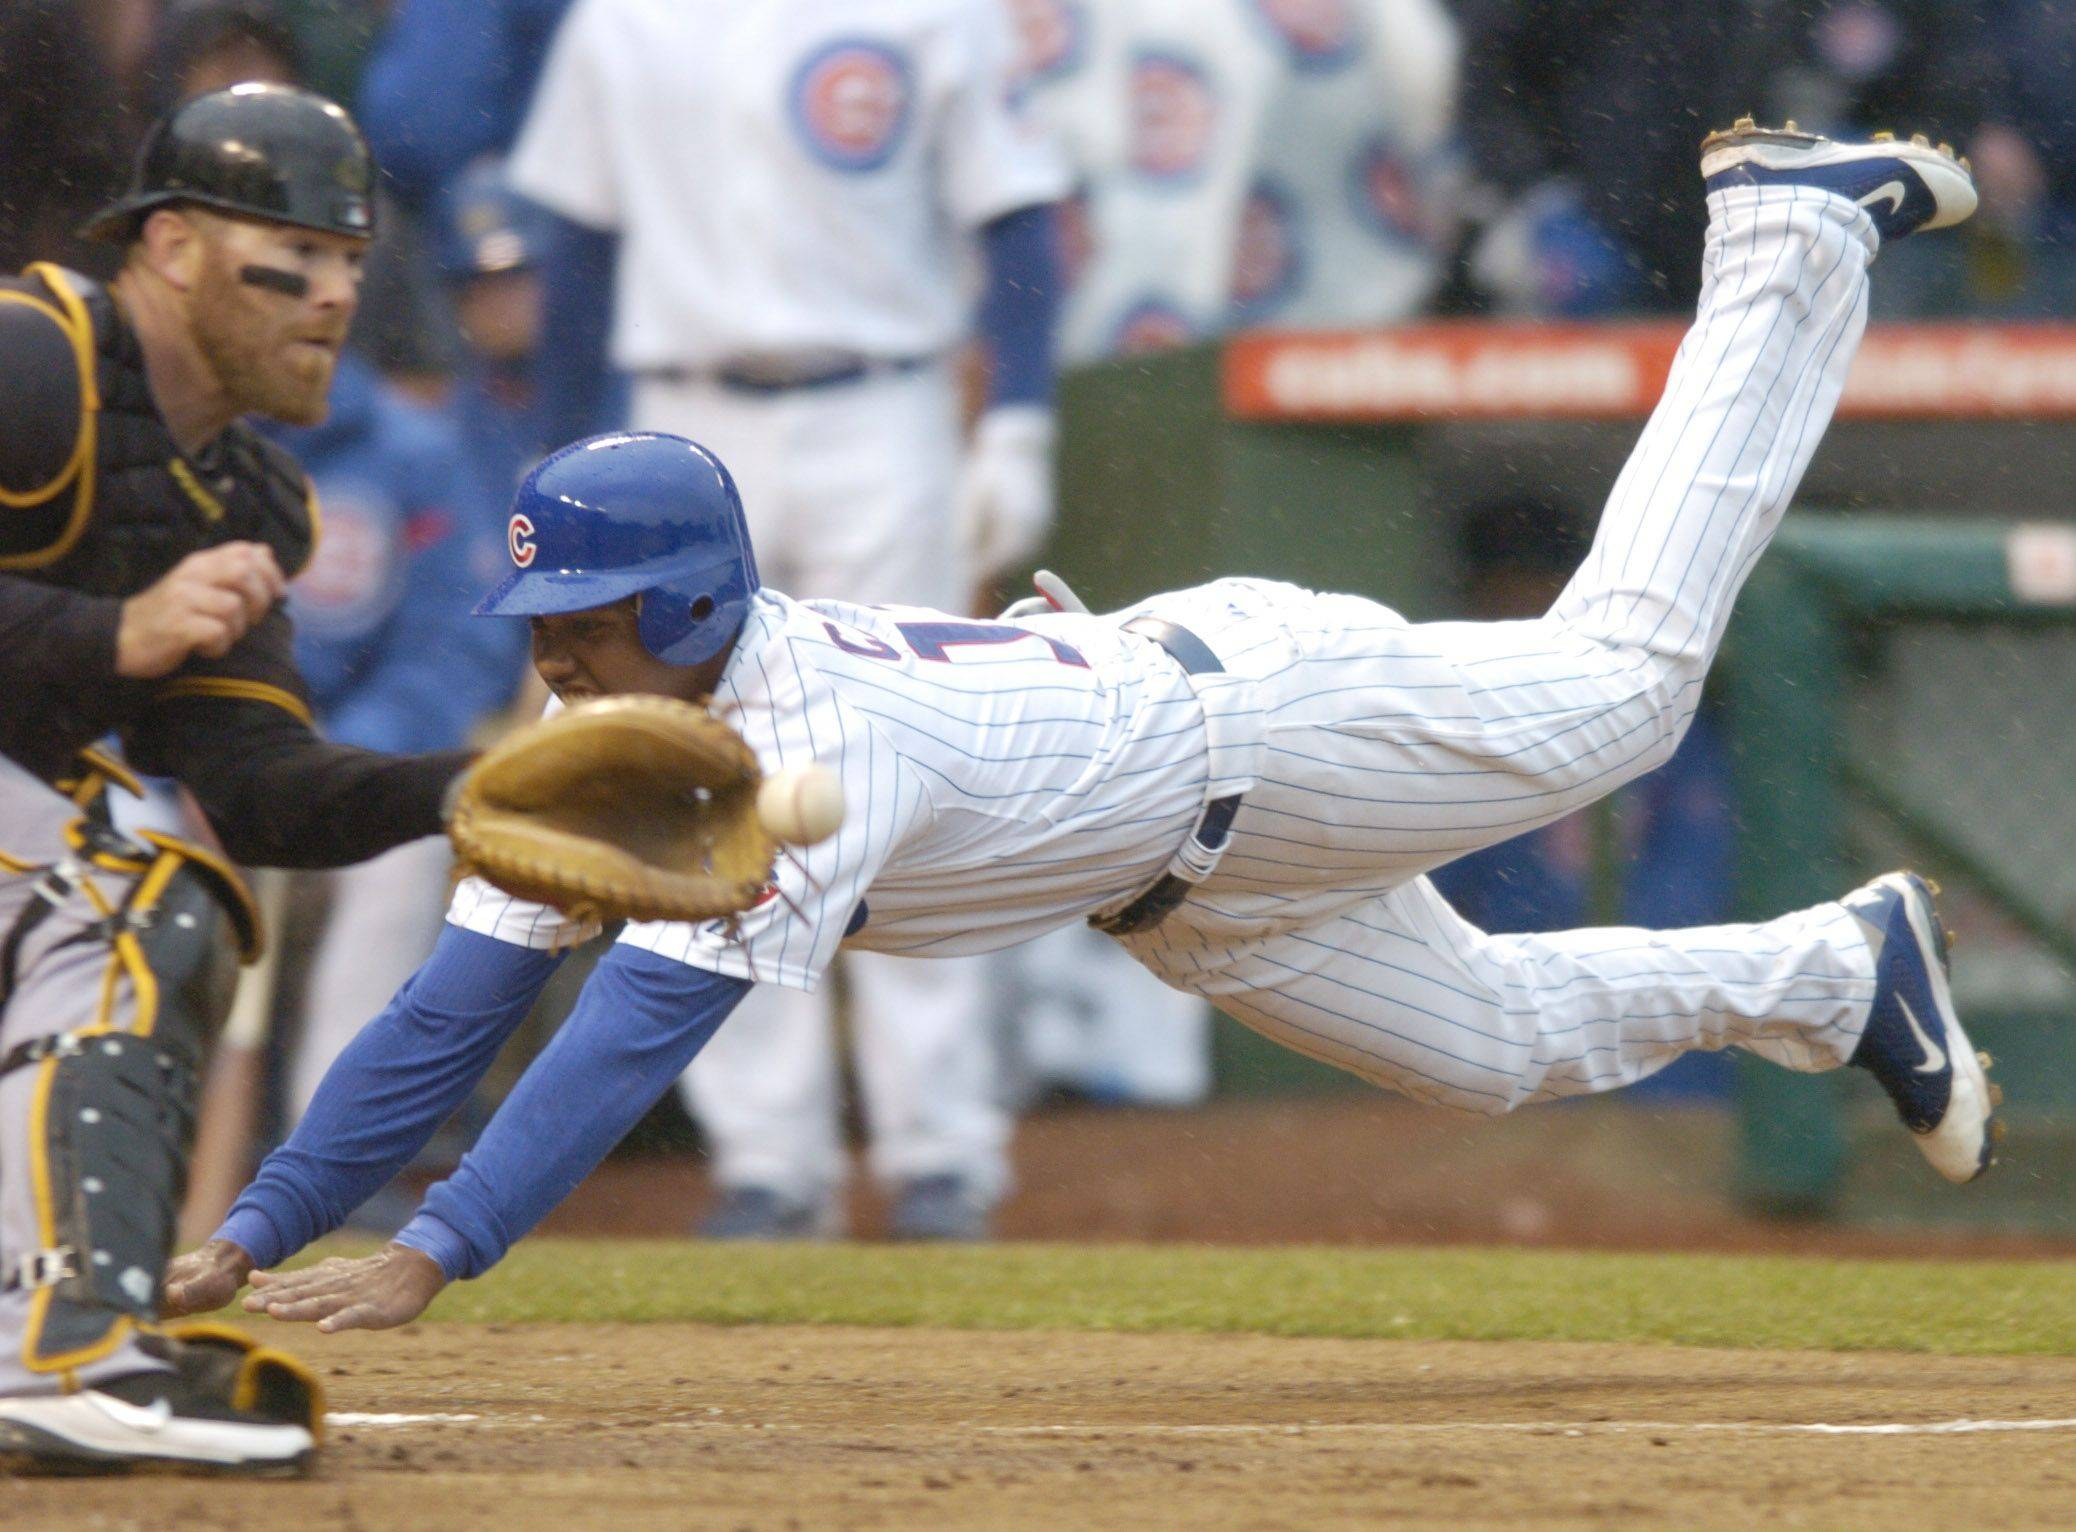 Starlin Castro of the Cubs dives past Pirates catcher Ryan Doumit during the first inning .